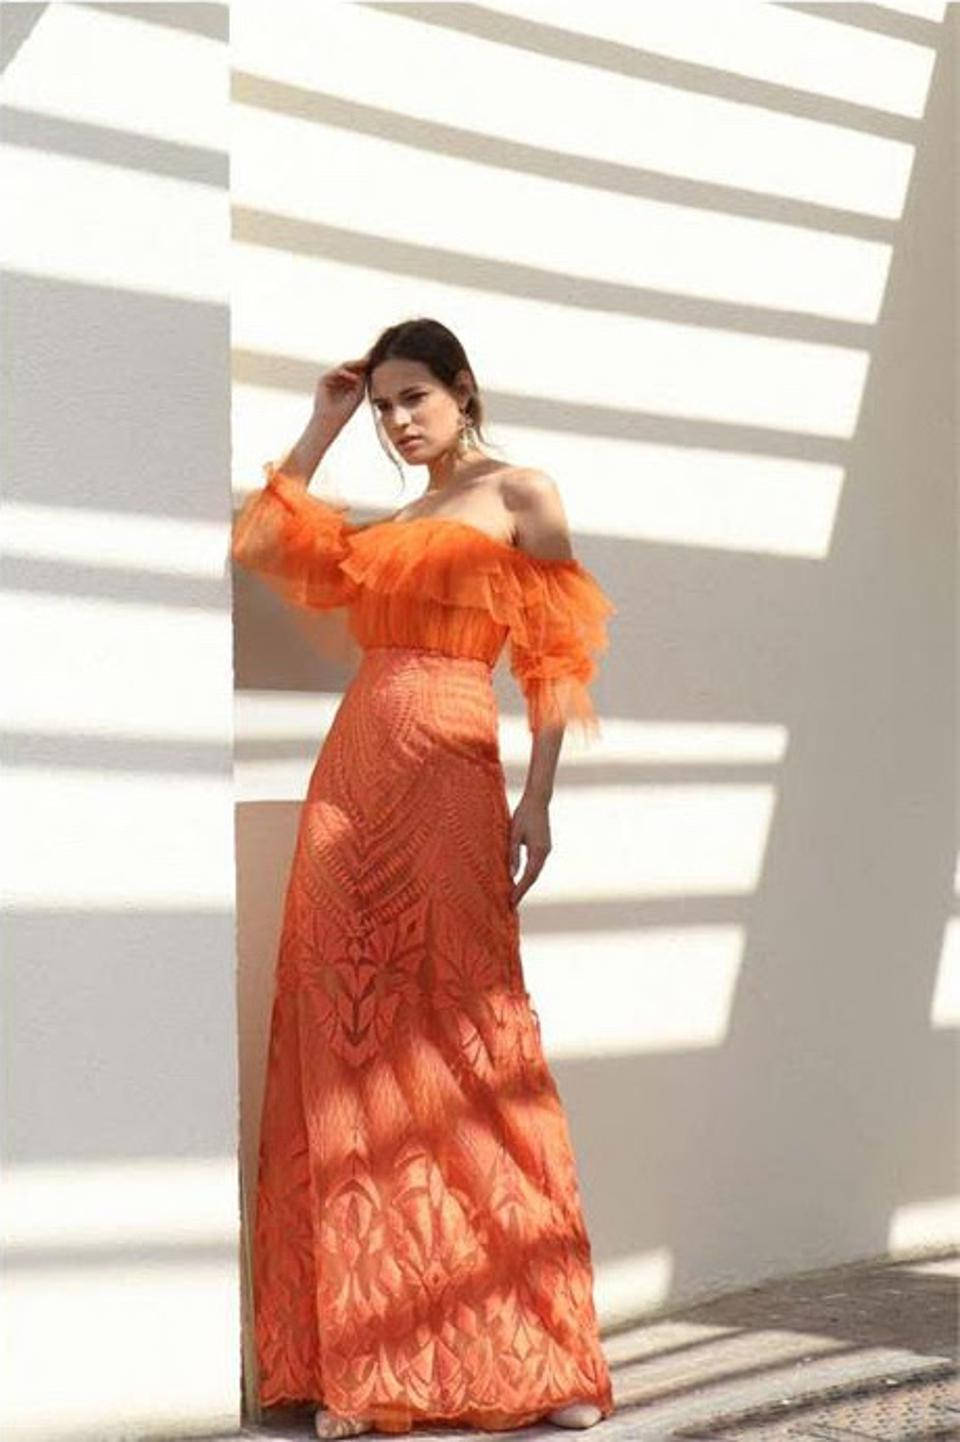 Off to the Races by THYM is the perfect addition to your summer evening wardrobe. This floor-length vibrant dress is cut from lace into a flattering A-line silhouette with a delicately draped, off-the-shoulder neckline and contrasting textures — an IT girl cocktail number for hot afternoons into sultry nights!